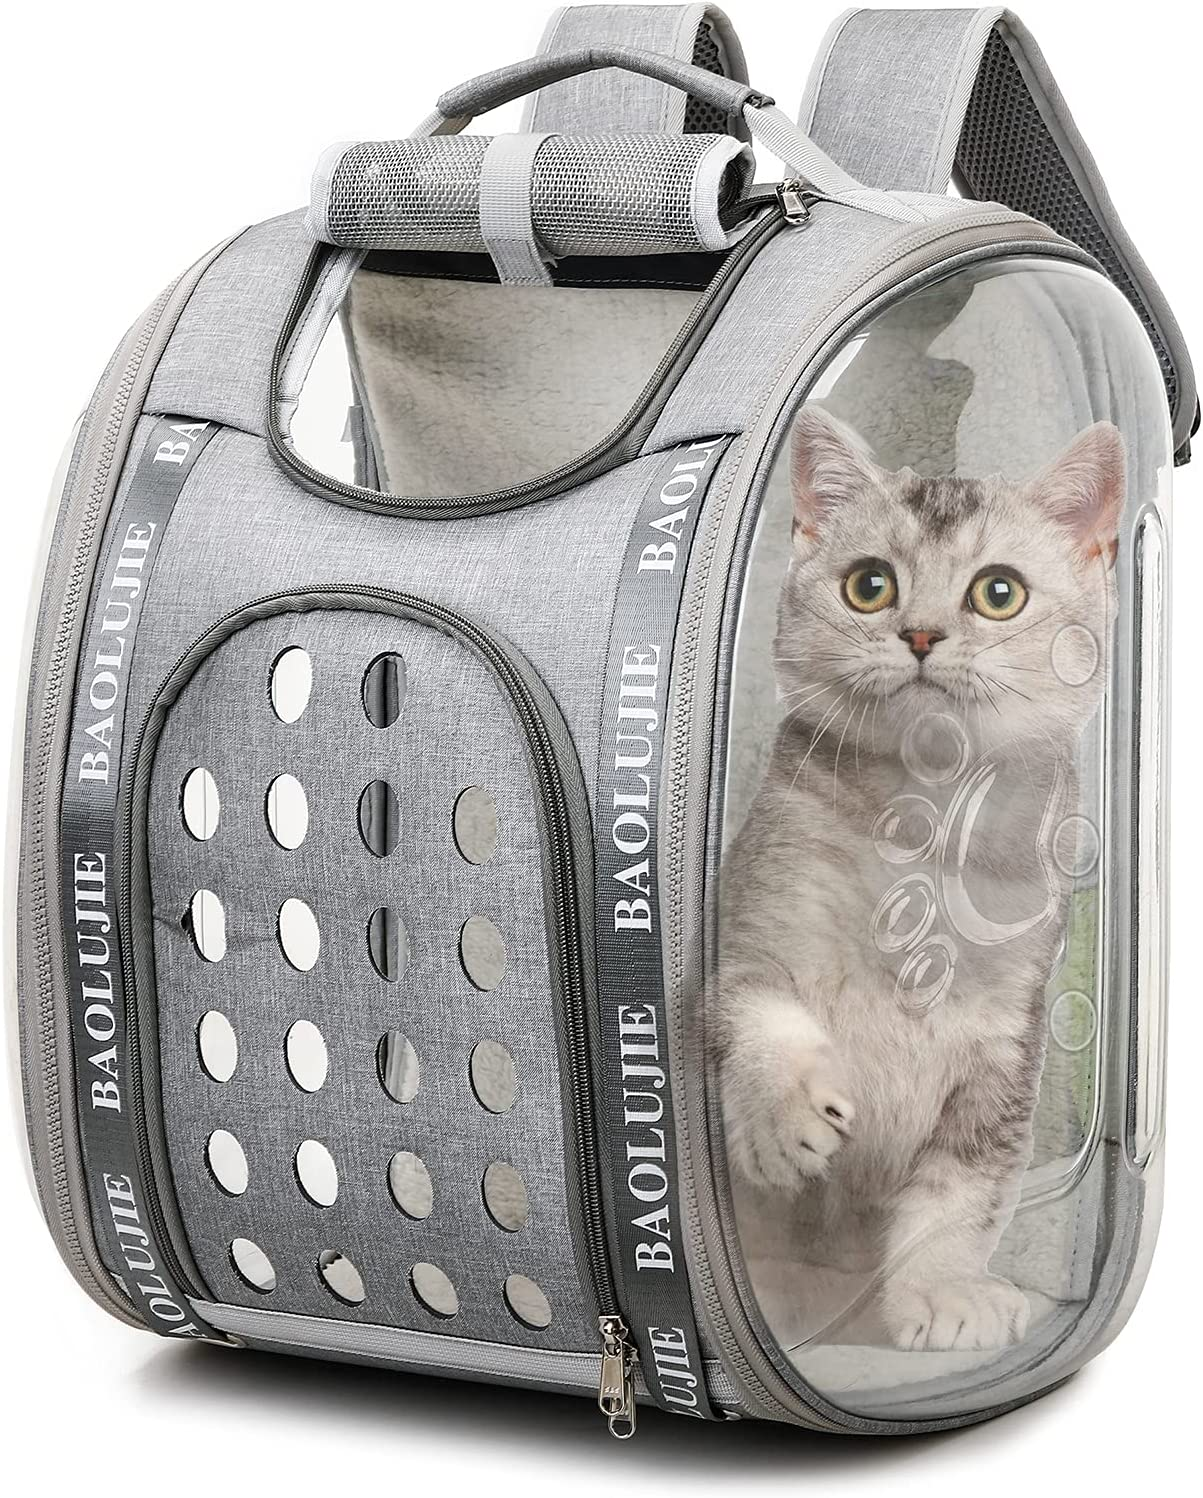 BOWINR Cat Carrier Backpacks Austin Mall Backpack Opening large release sale Capacity Carrie Large